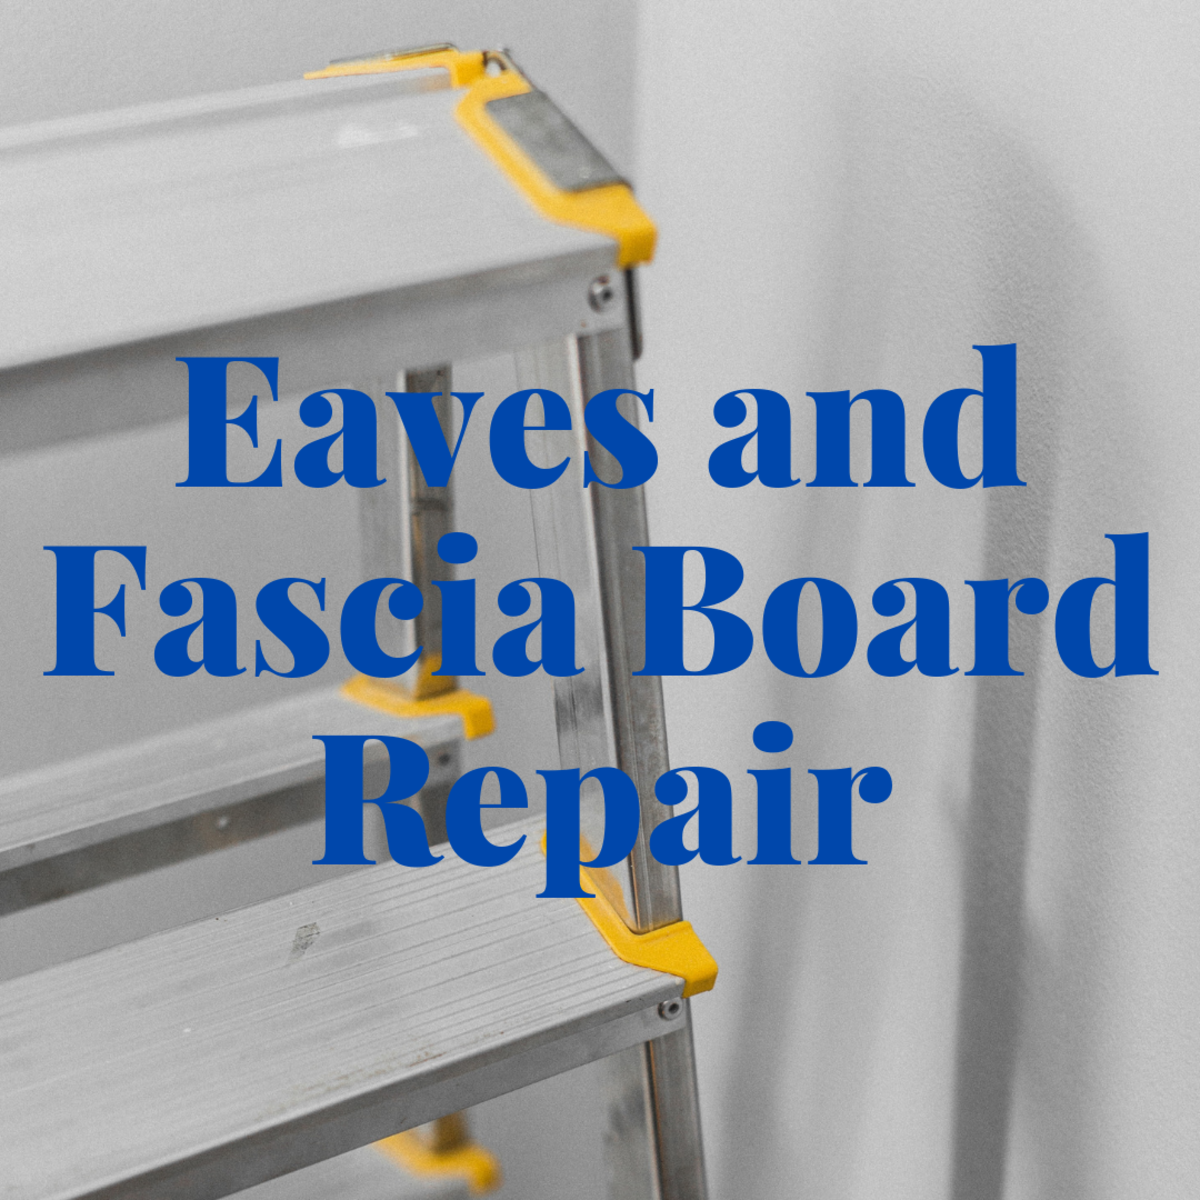 Eaves and Fascia Board Repair